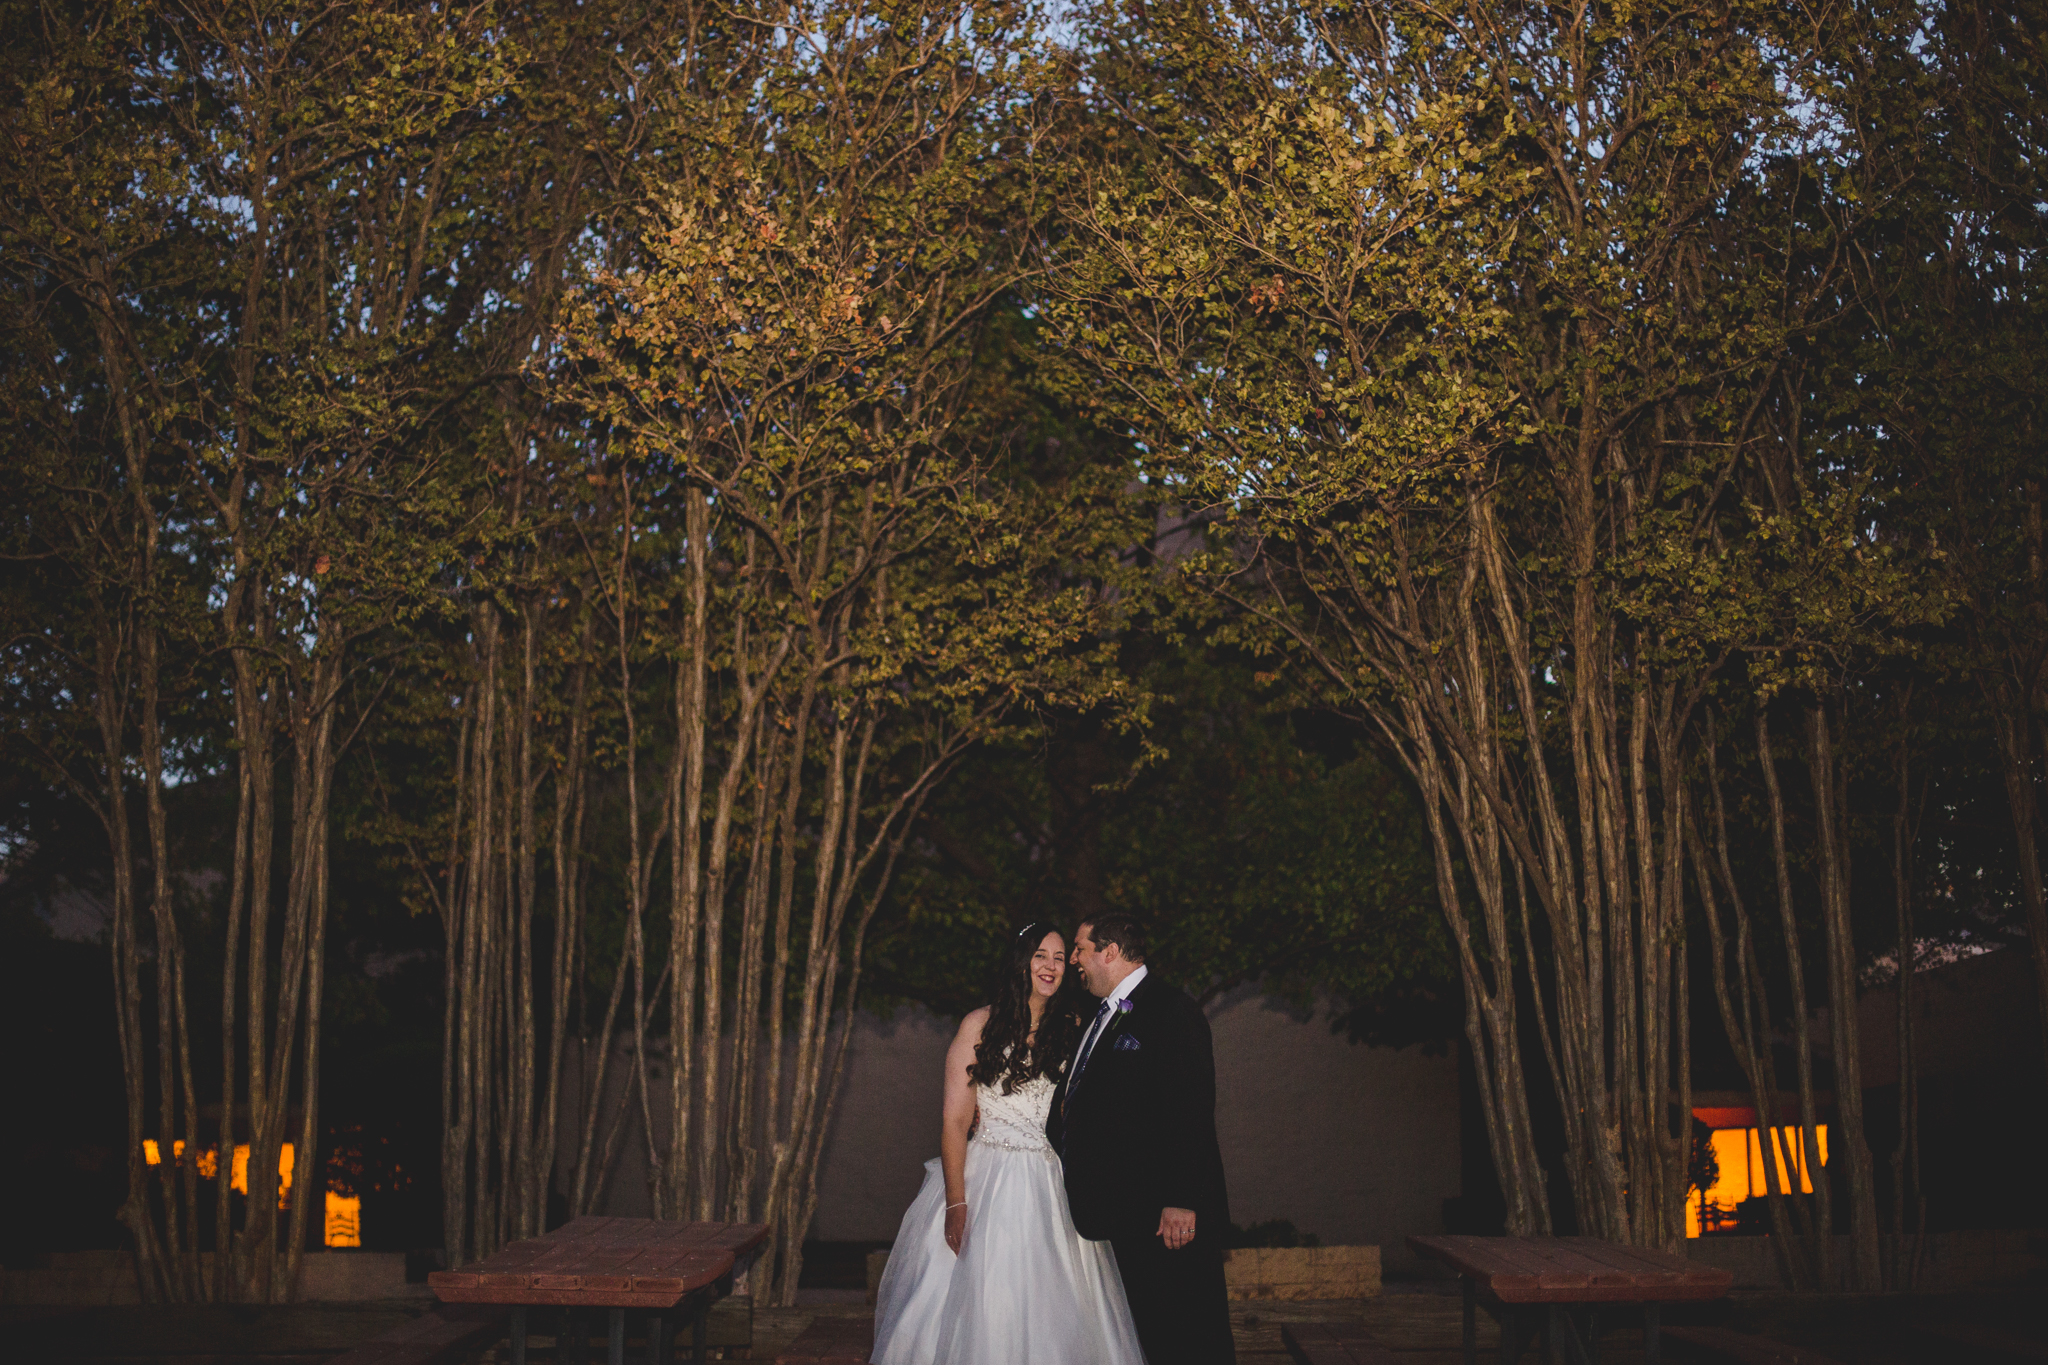 rs creative bride and groom laugh among trees at night cool